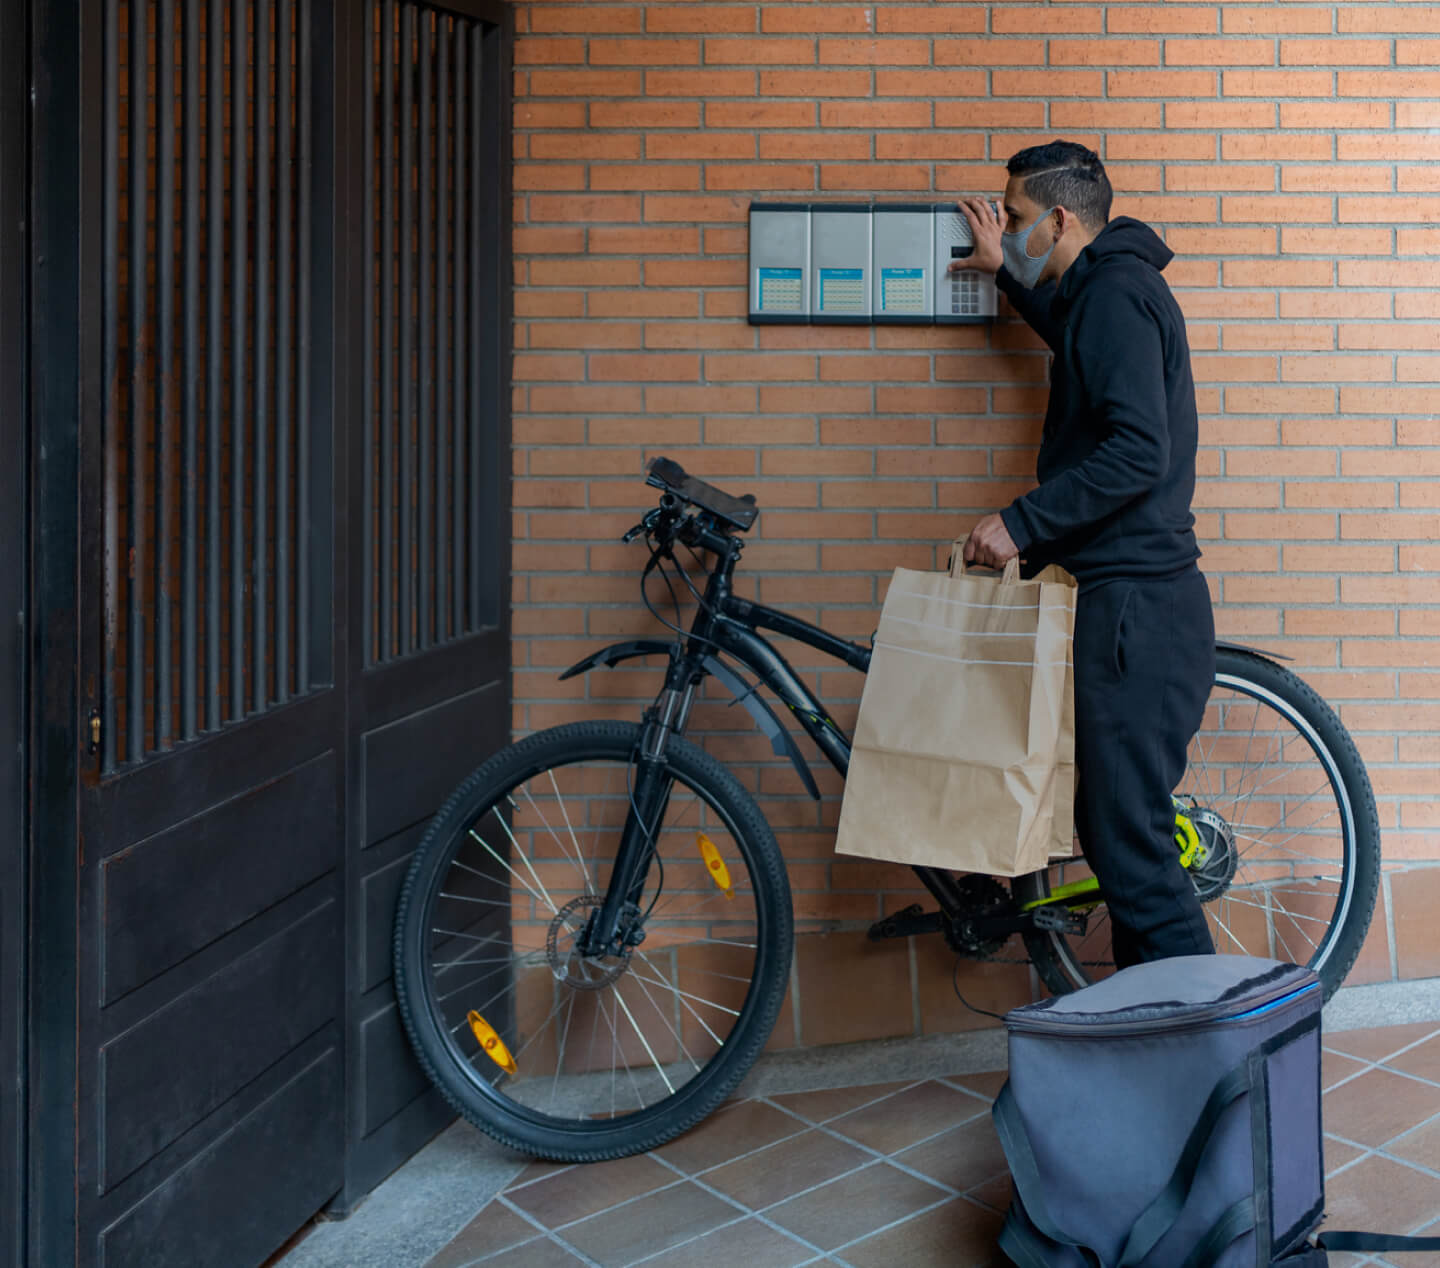 Person delivering an order